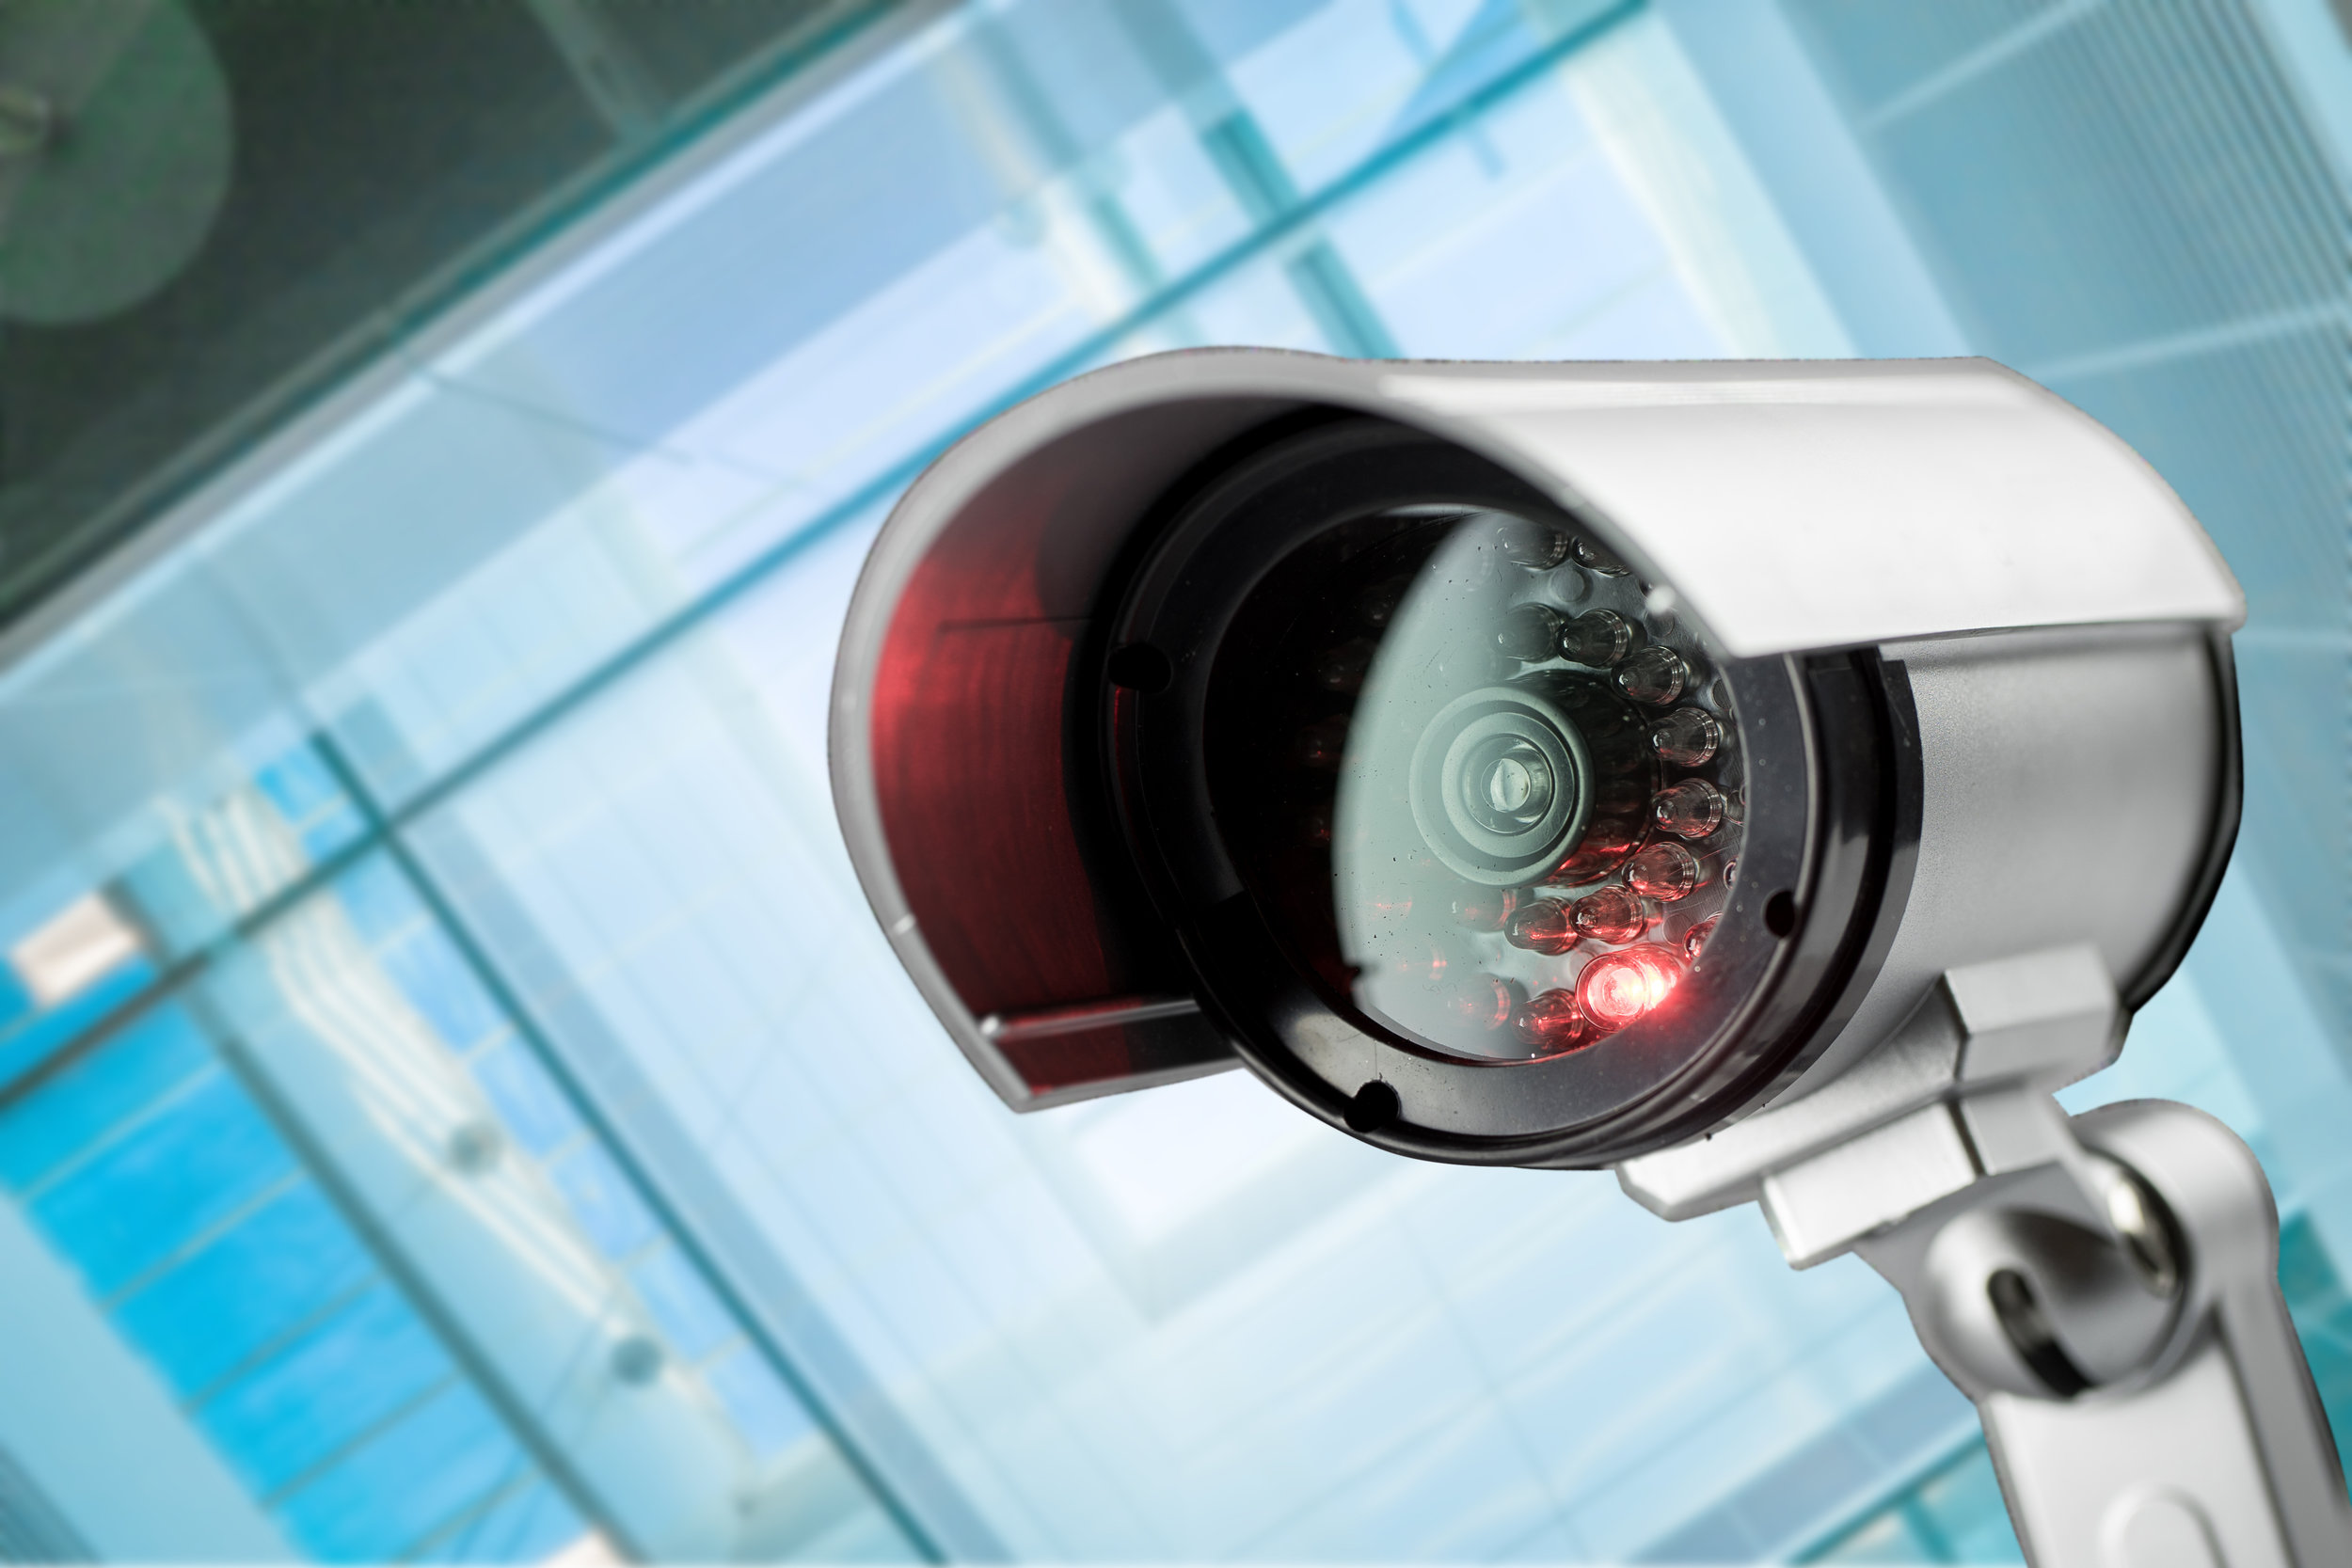 CCTV - CCTV Systems have become more sophisticated and cost effective for the protection of your property and staff. Smart Installations systems are fully integrated and will allow you to have real time viewing at any time from your phone and will record in High definition for review at a later date.